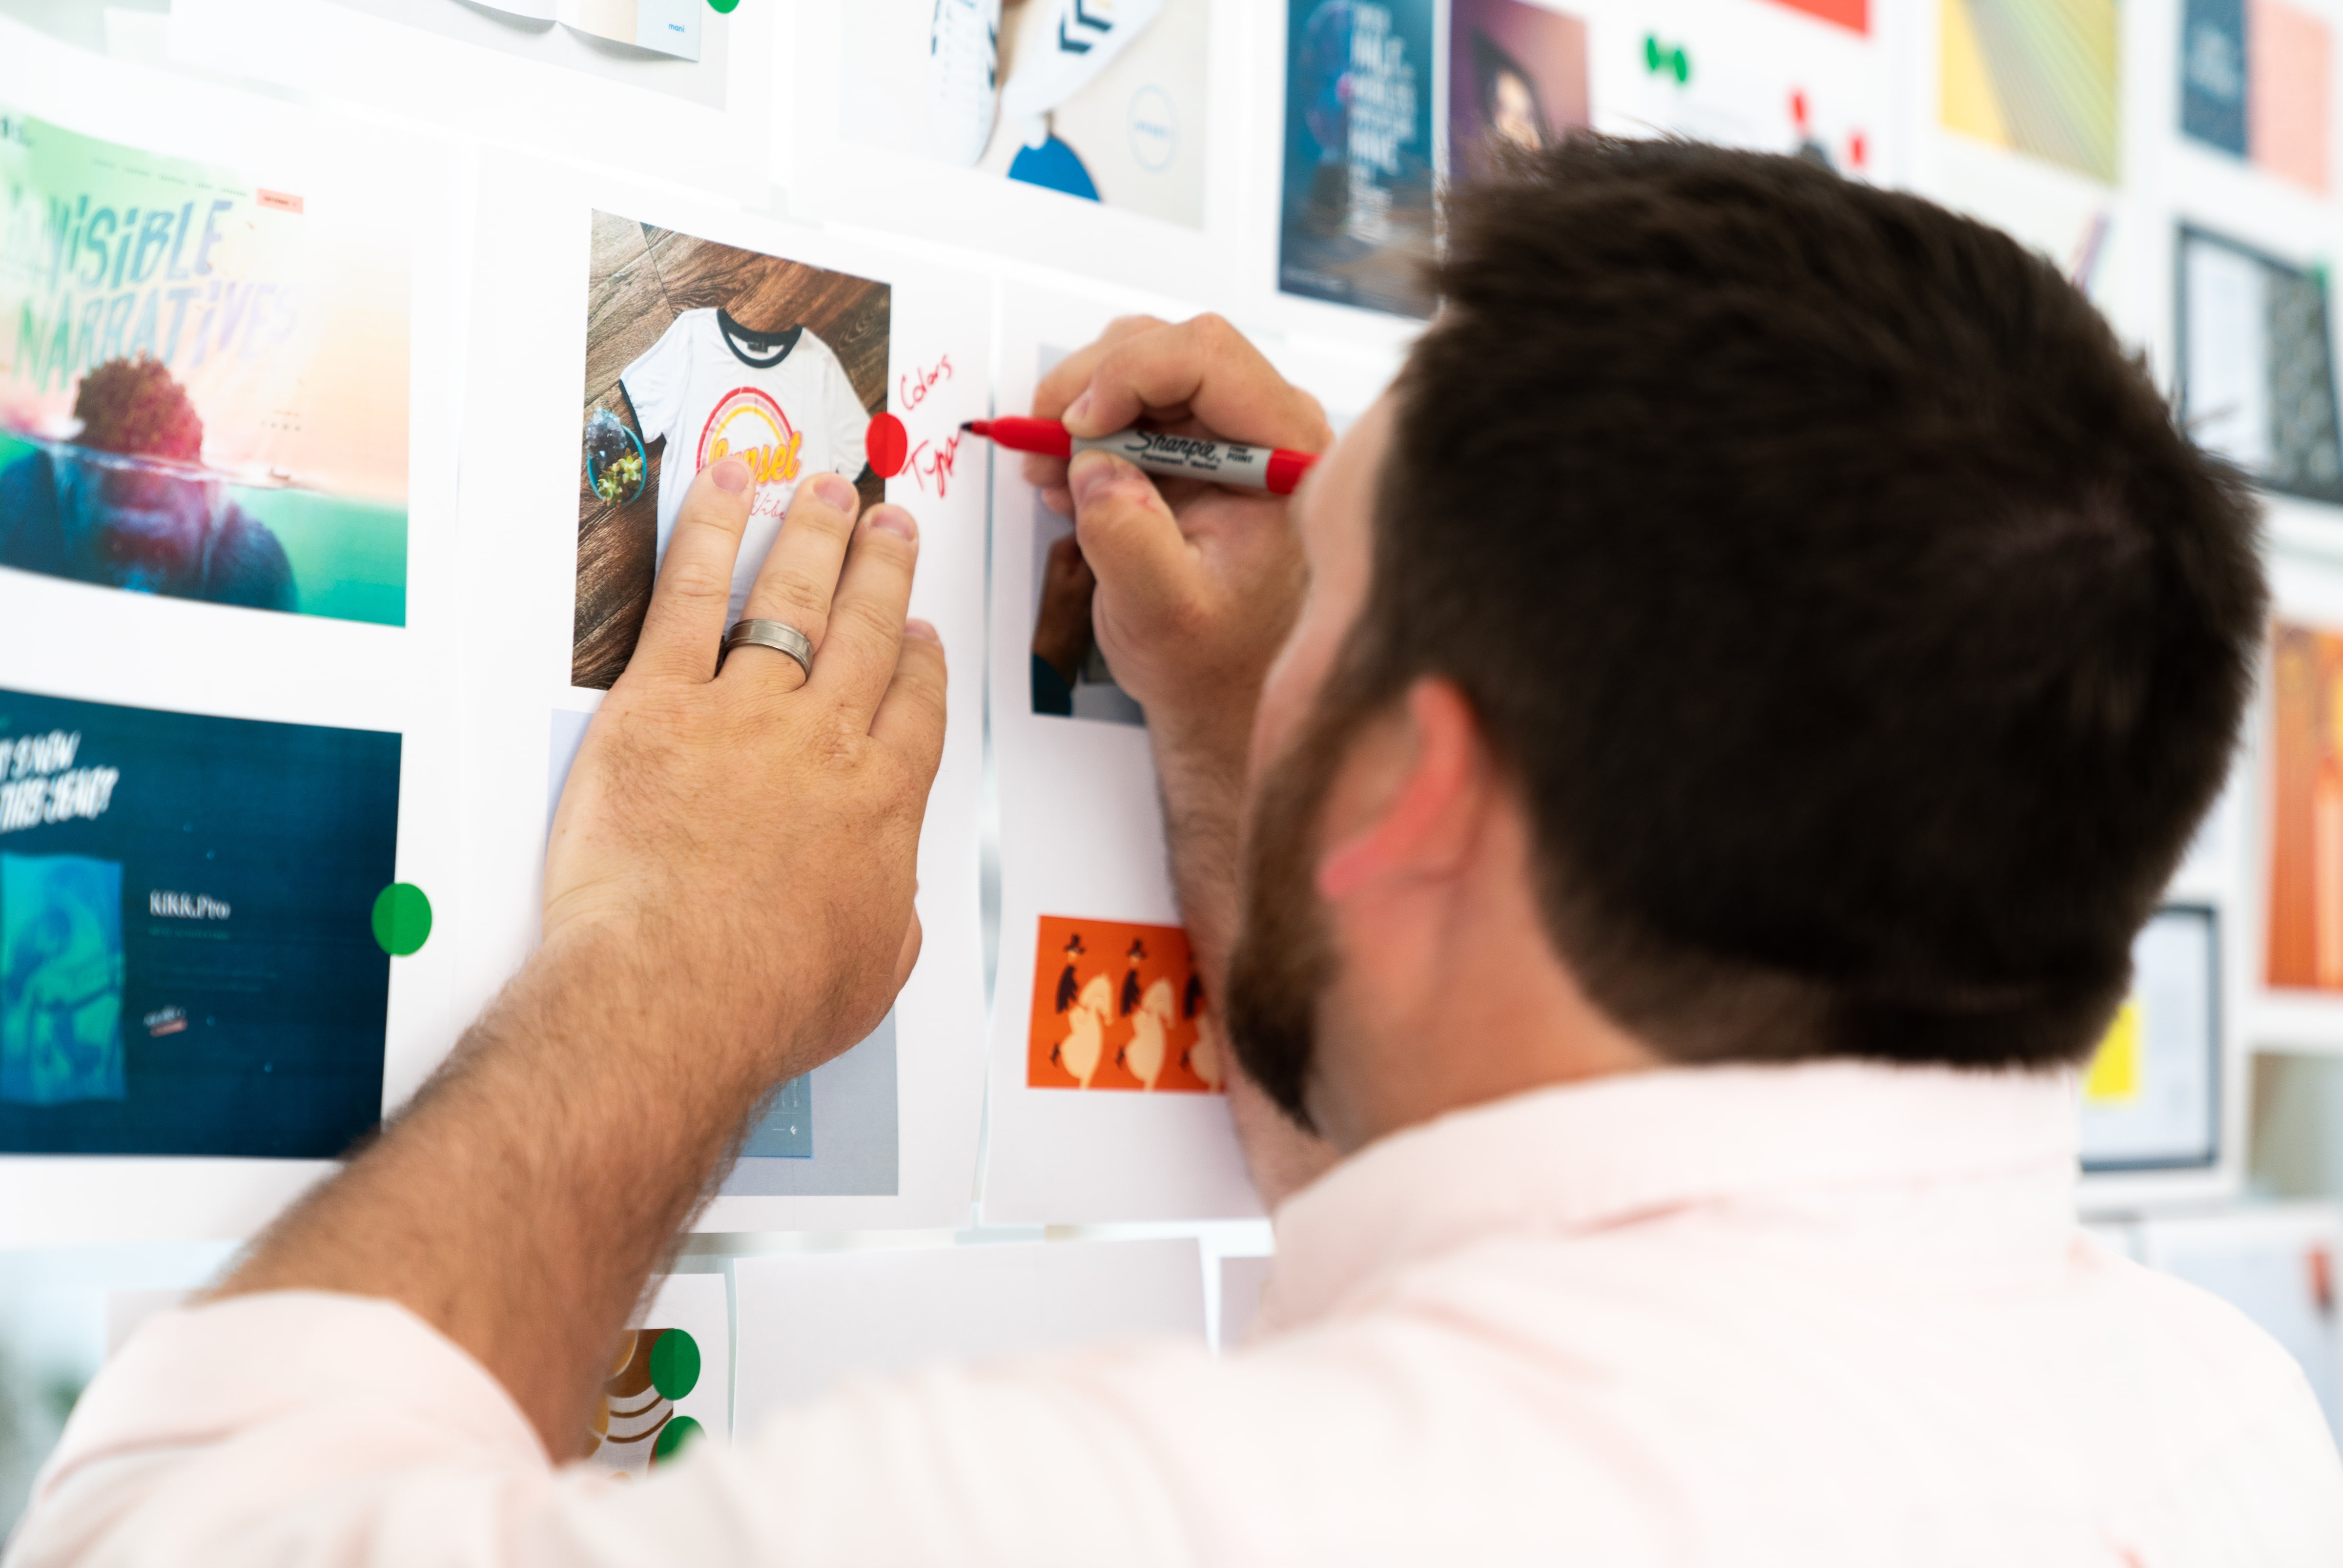 Designer writes notes on printed images tacked to a wall for a brand style guide